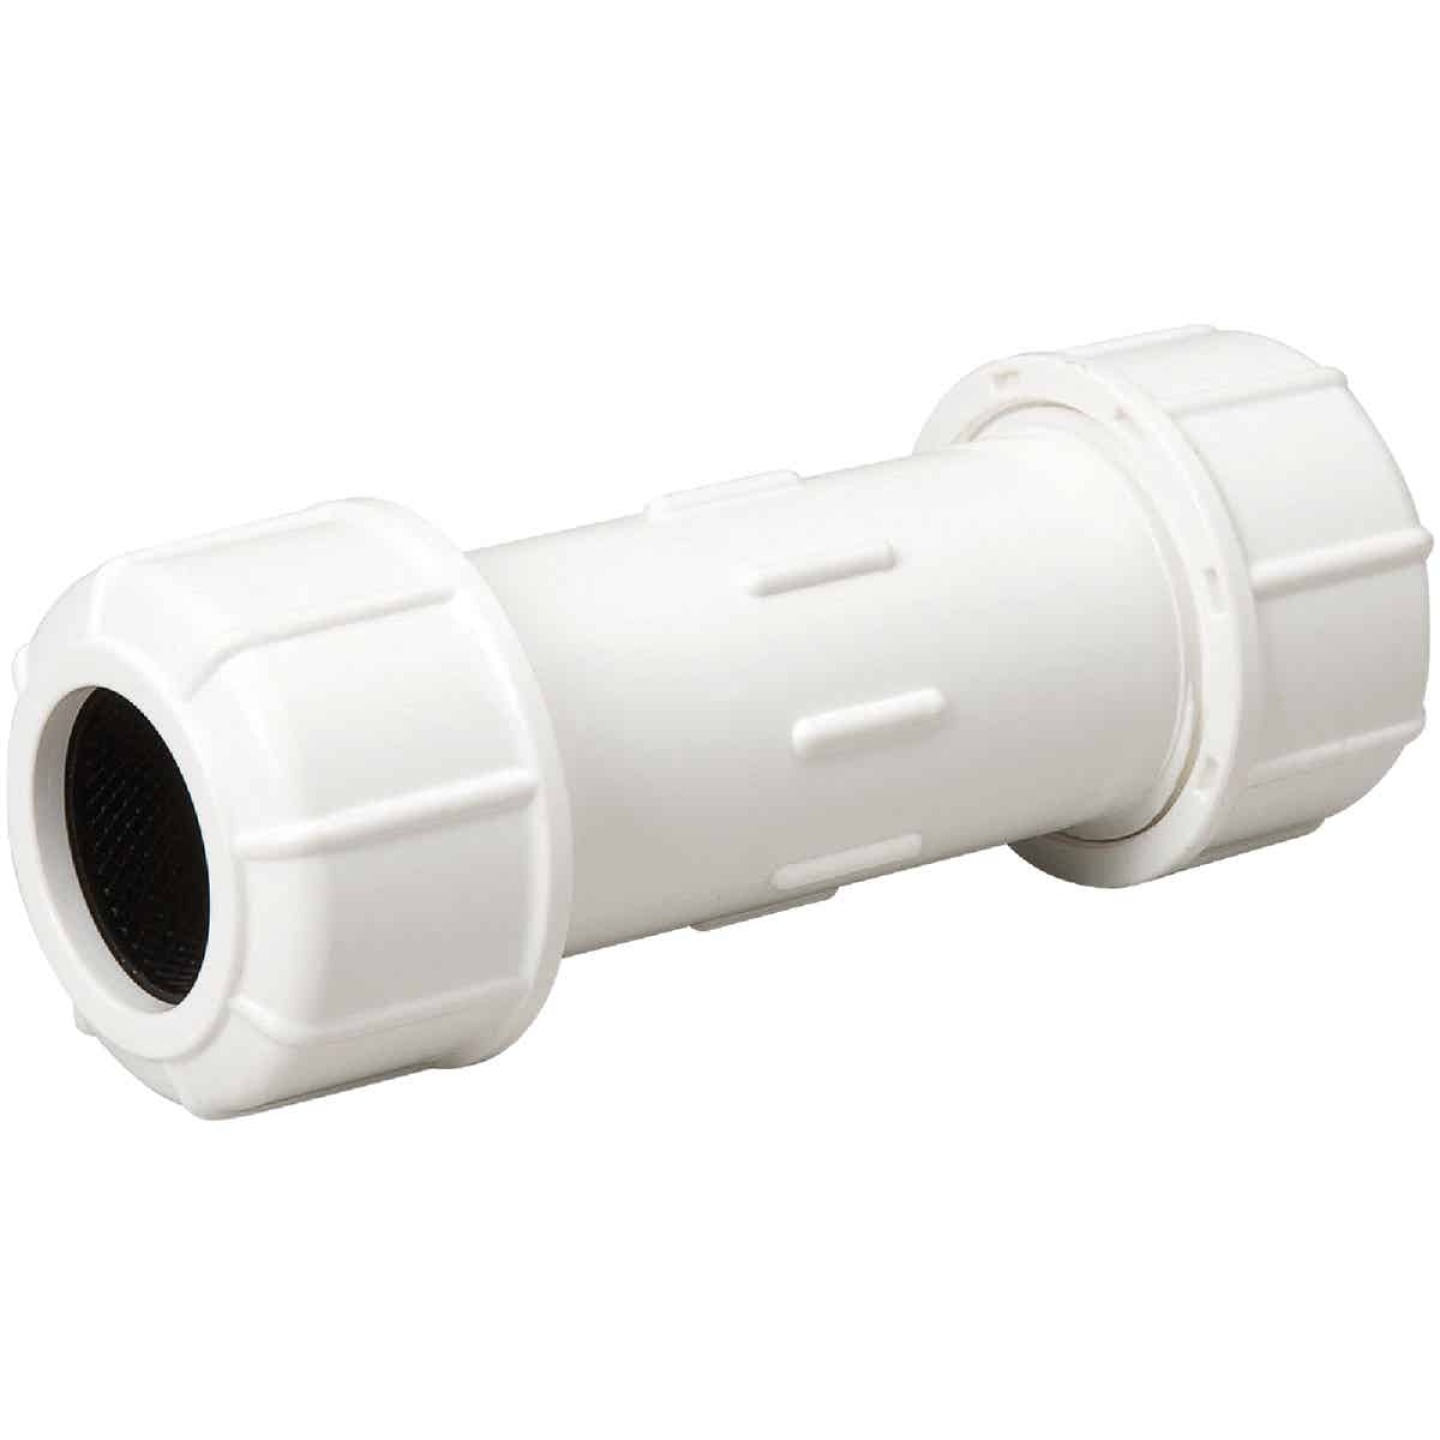 B & K 3/4 In. X 5 In. Compression PVC Coupling  Image 1